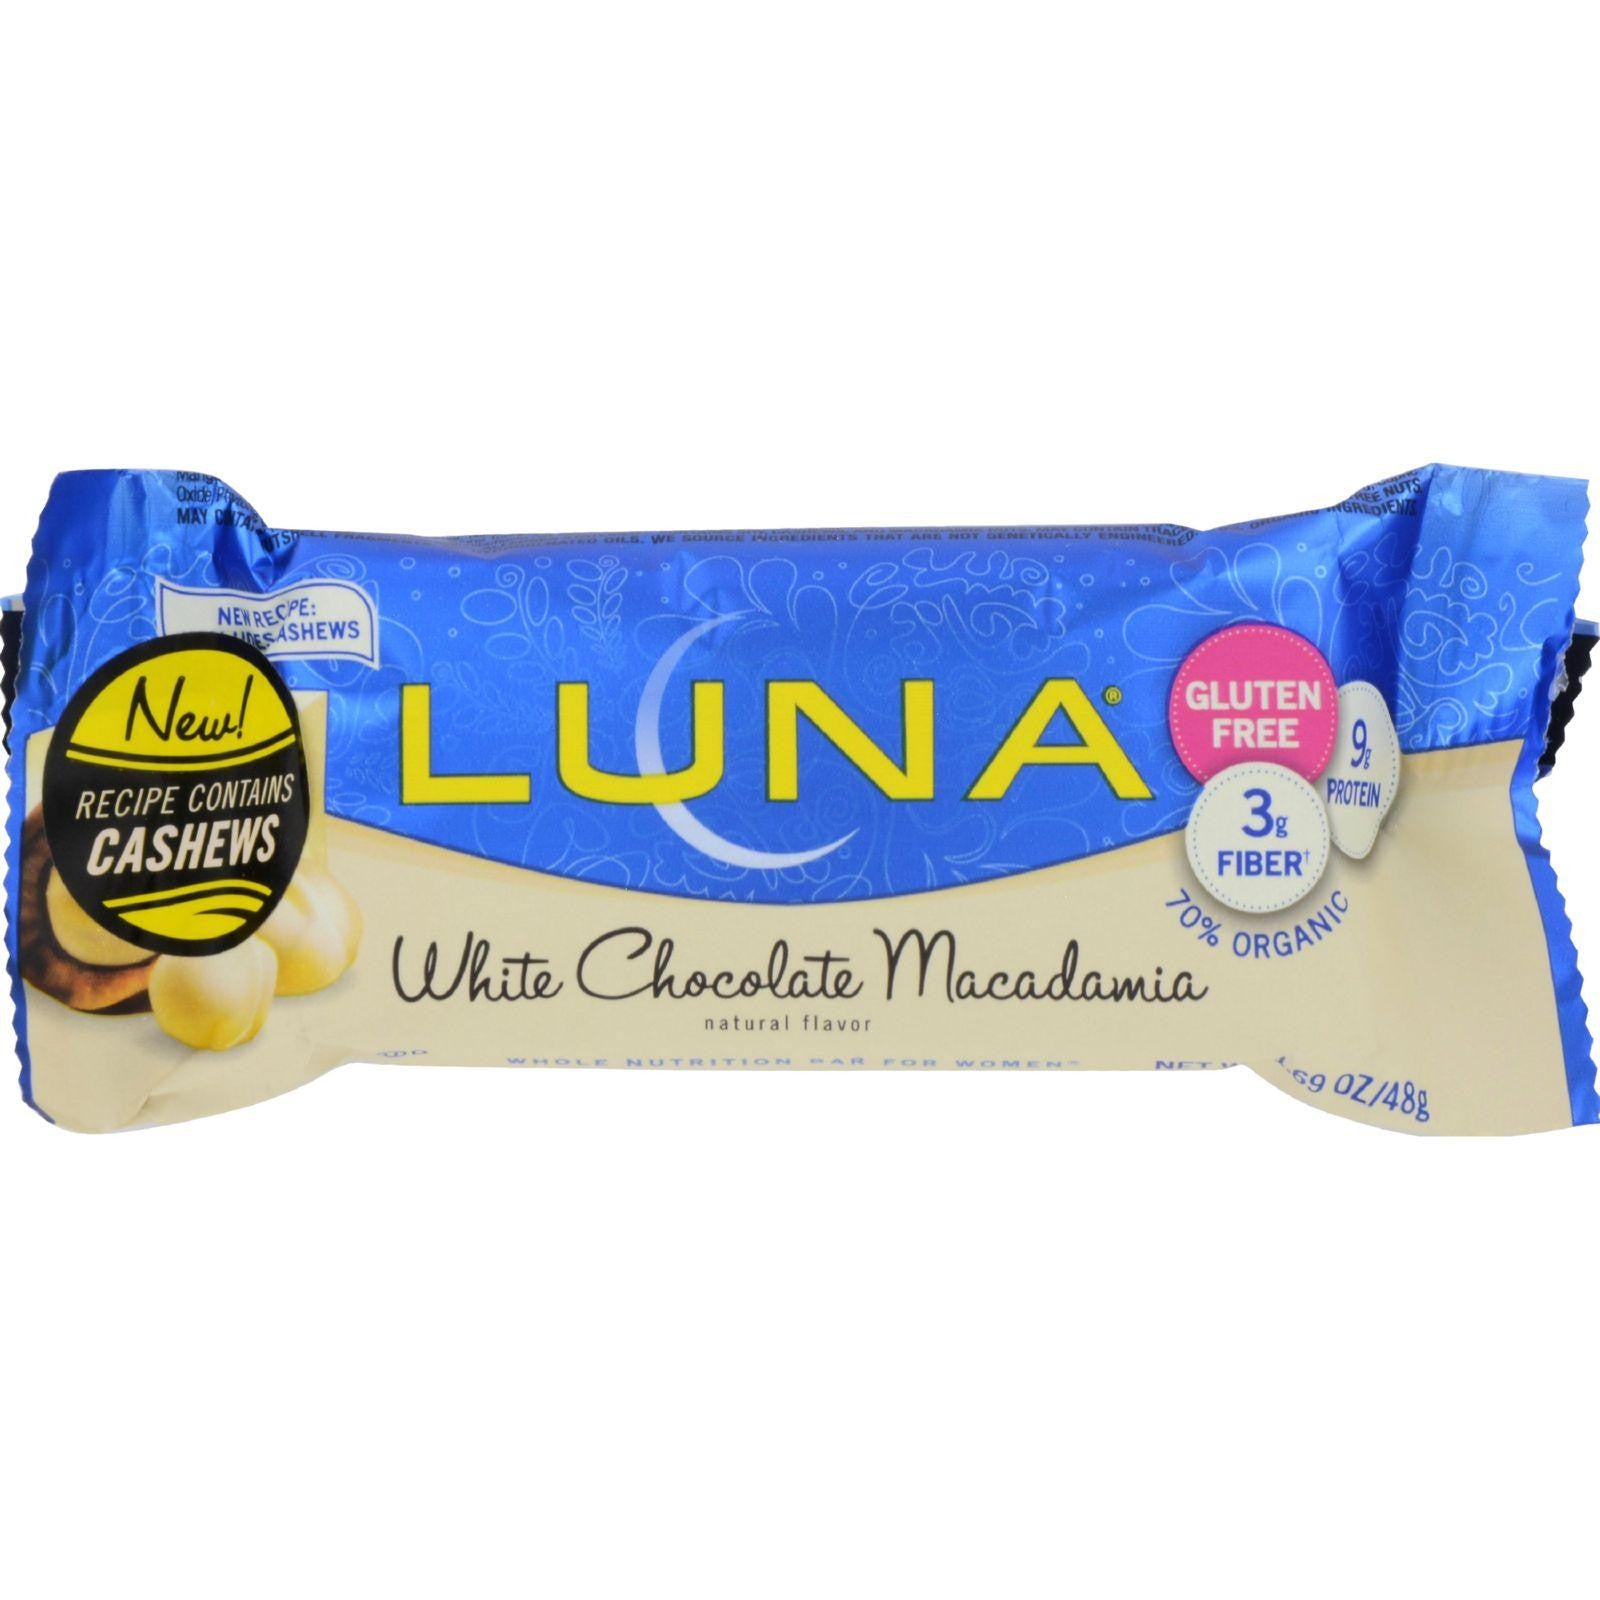 Clif Bar Luna Bar - Organic White Chocolate Macadamia Nut - Case Of 15 - 1.69 Oz